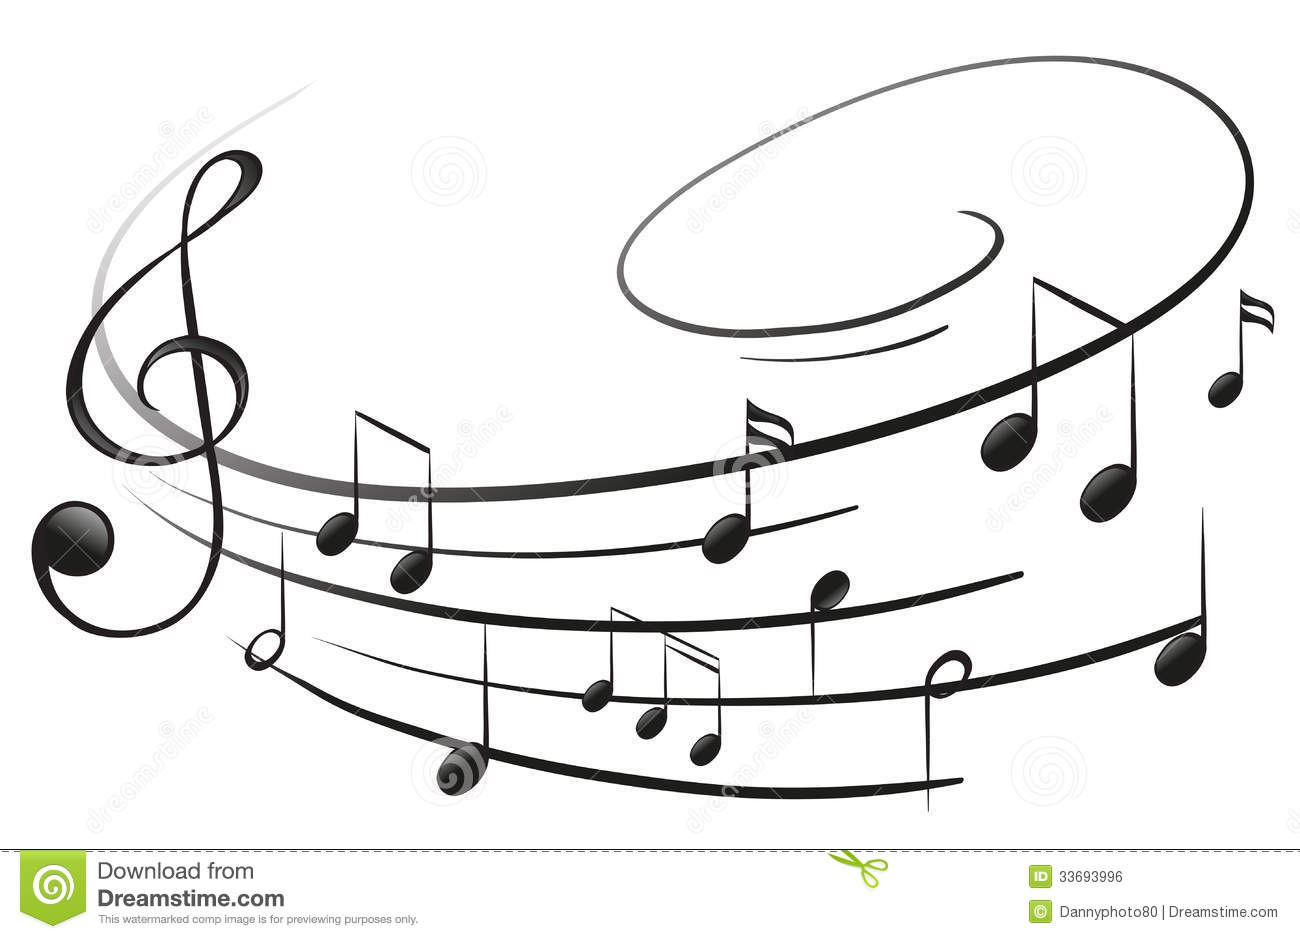 The musical notes with the G-clef